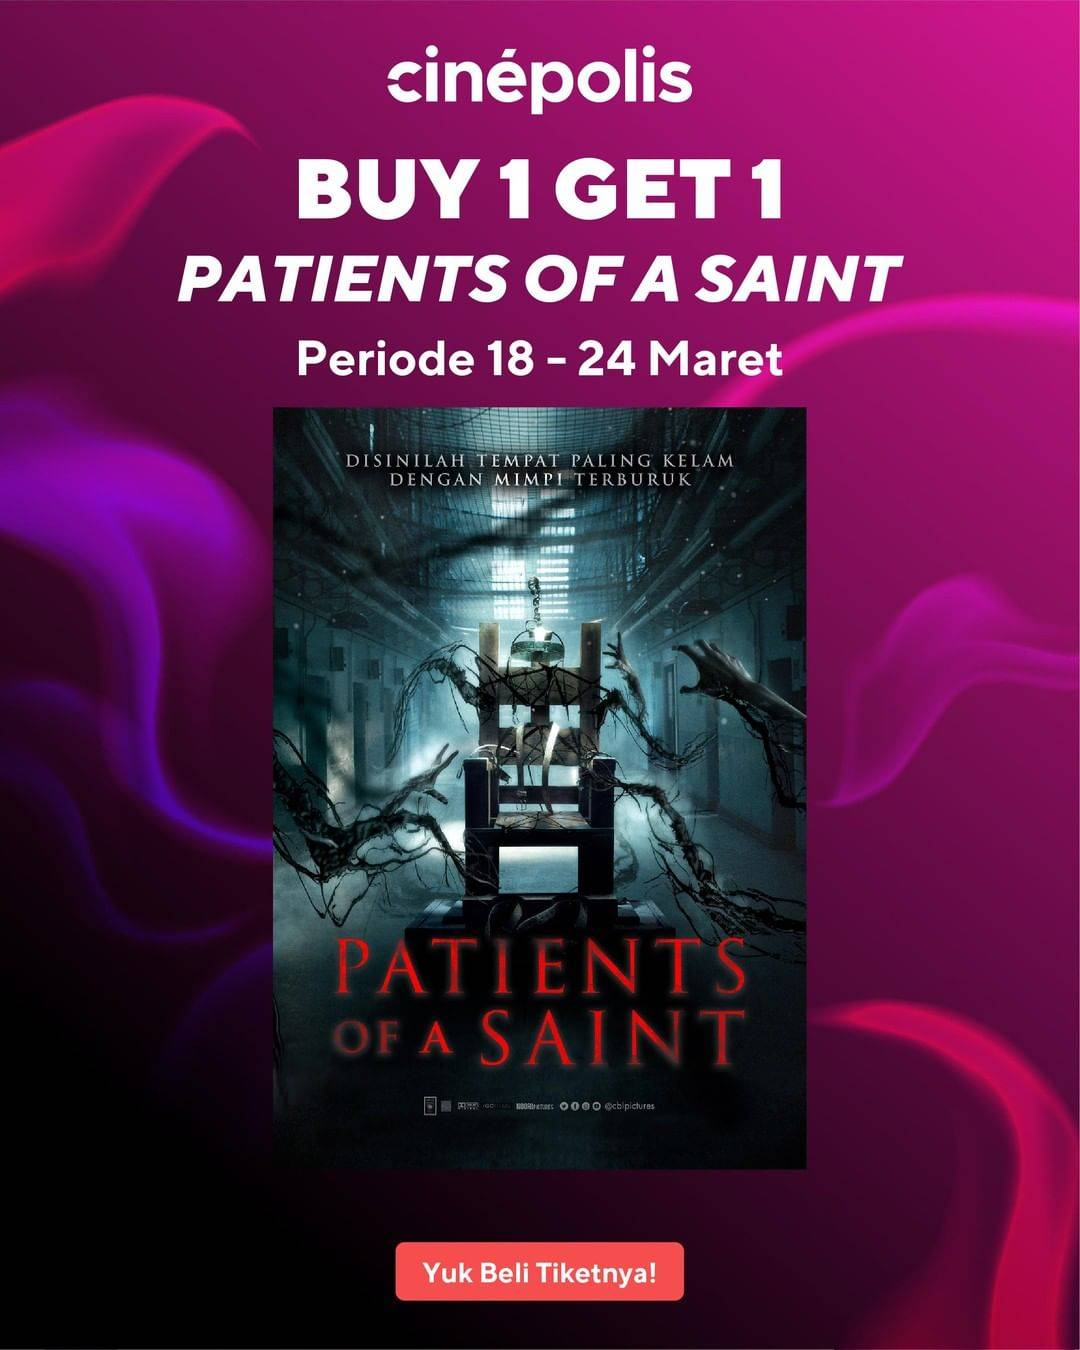 Cinepolis Promo Buy 1 Get 1 Tiket Film Patients Of A Saint